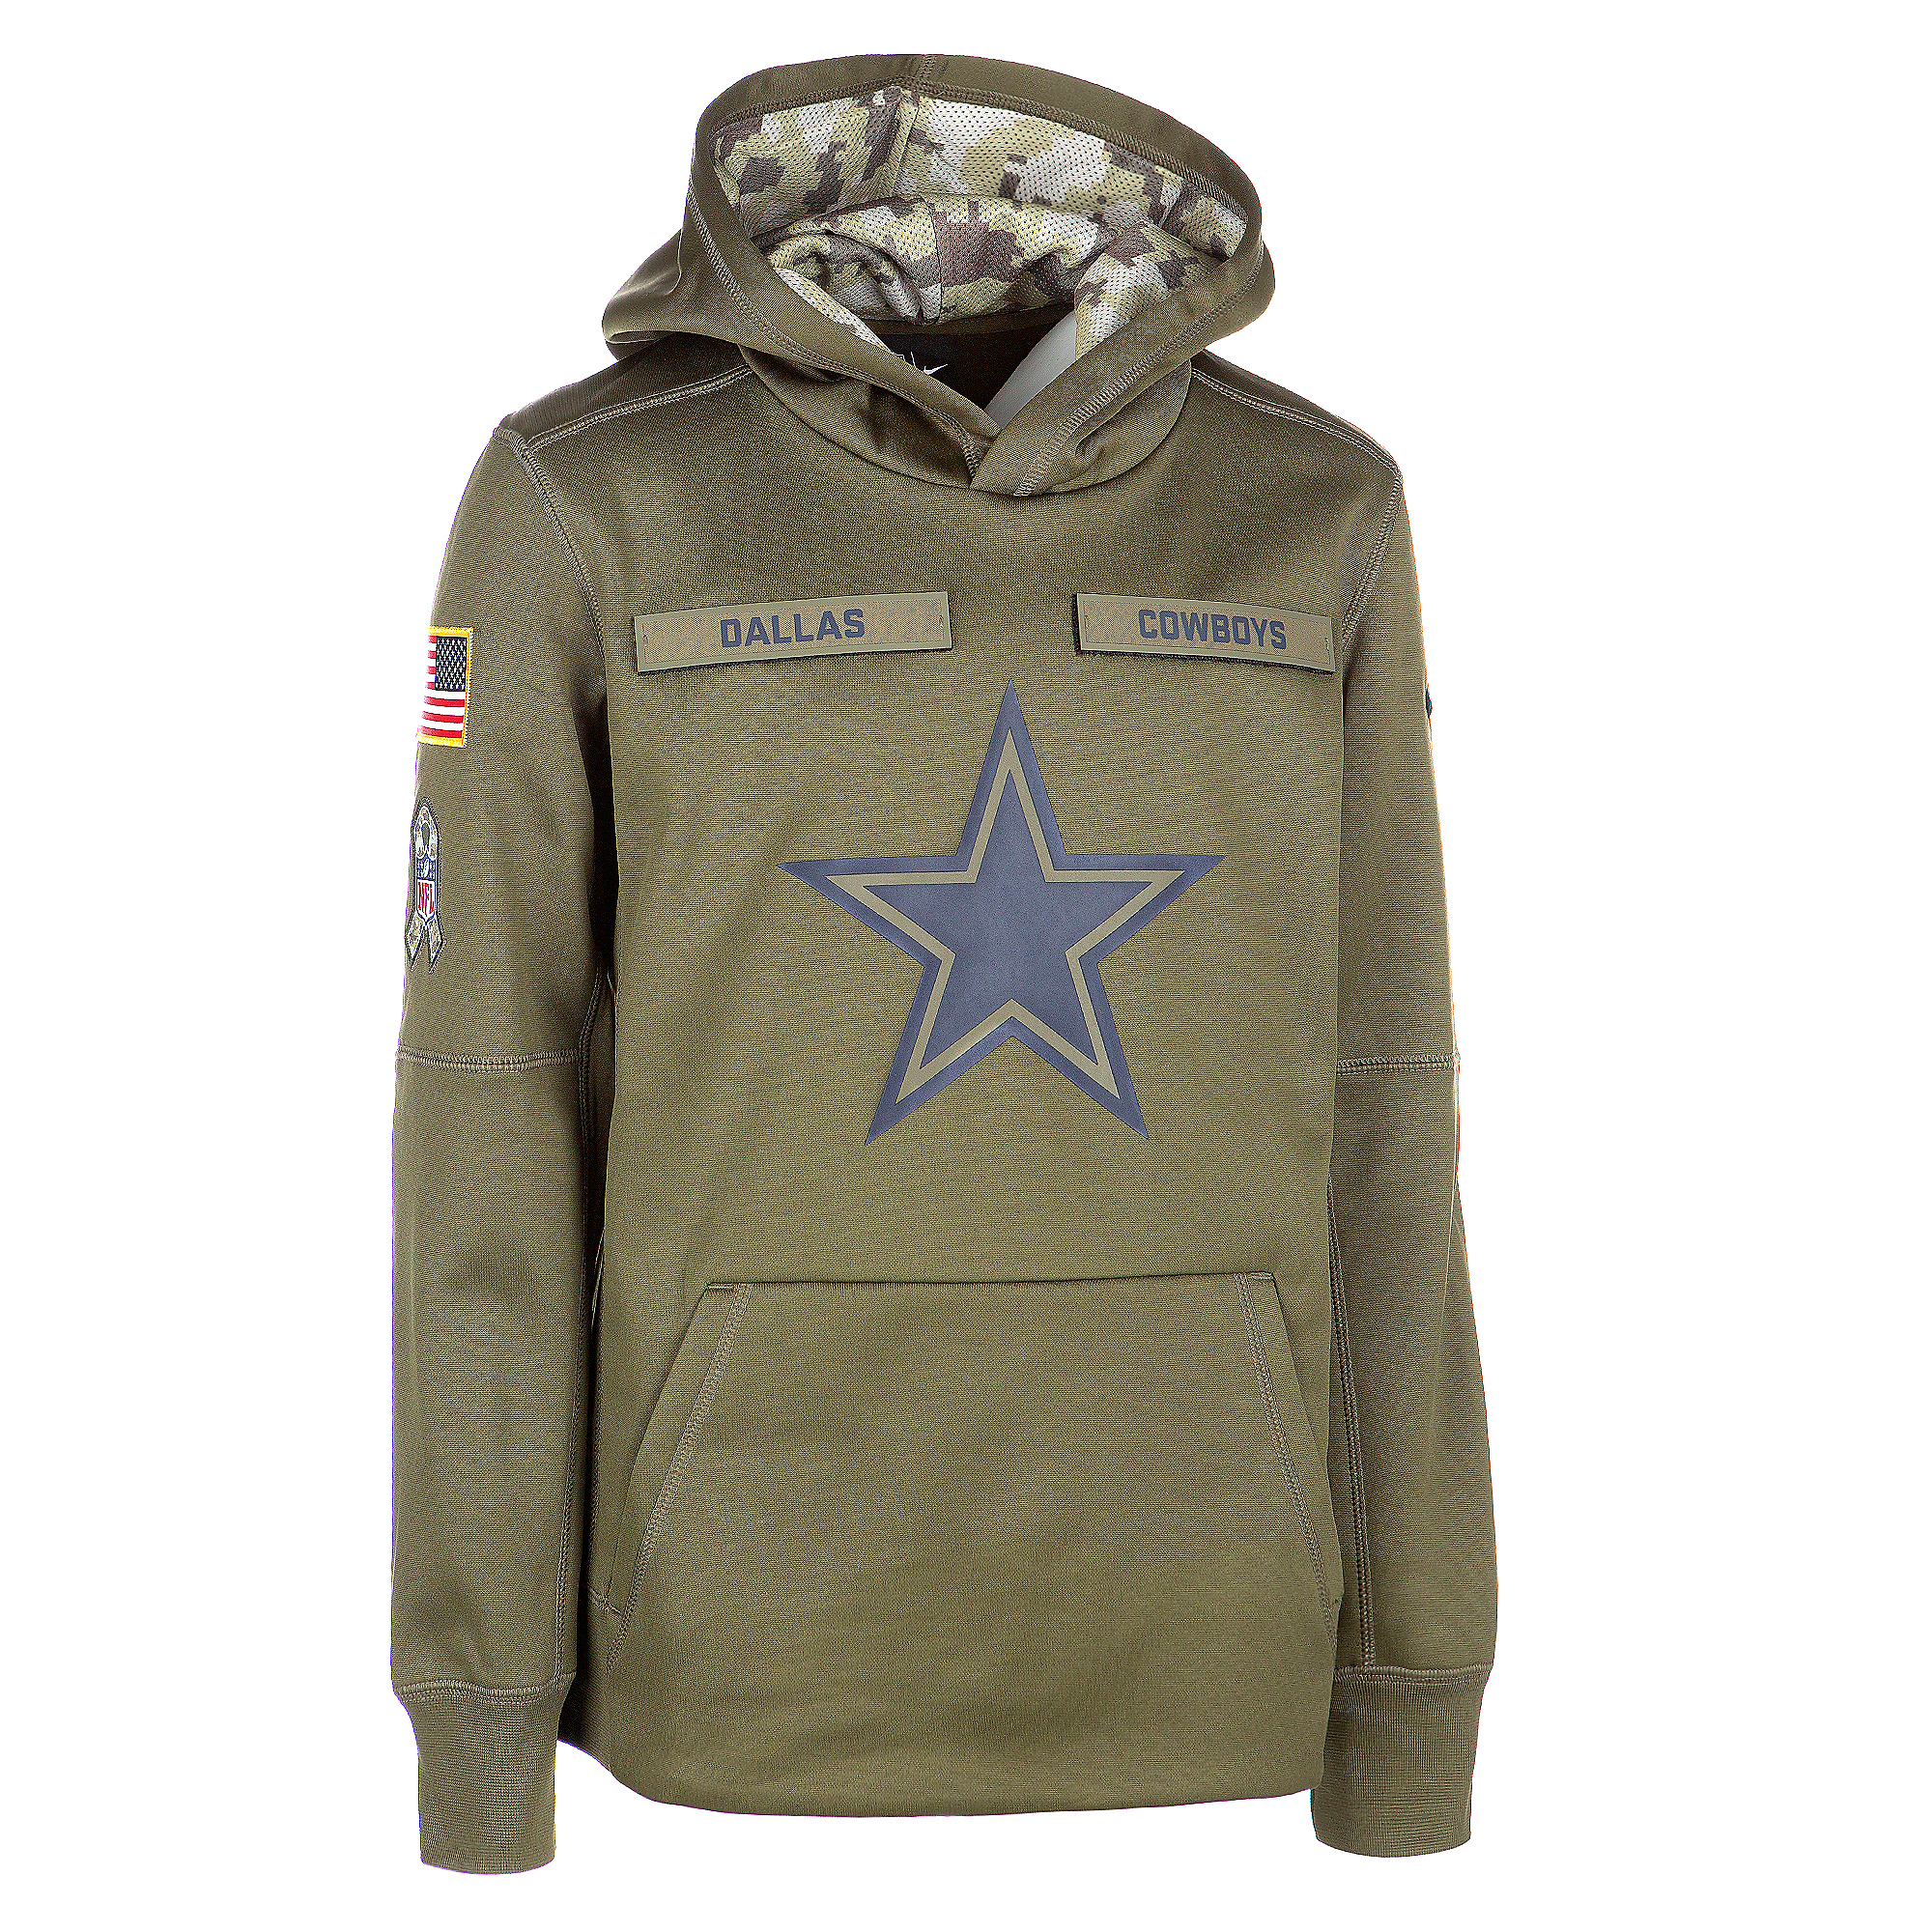 buy online 7bc54 ed89c Dallas Cowboys Nike Salute to Service Youth Hoody | Dallas Cowboys Pro Shop